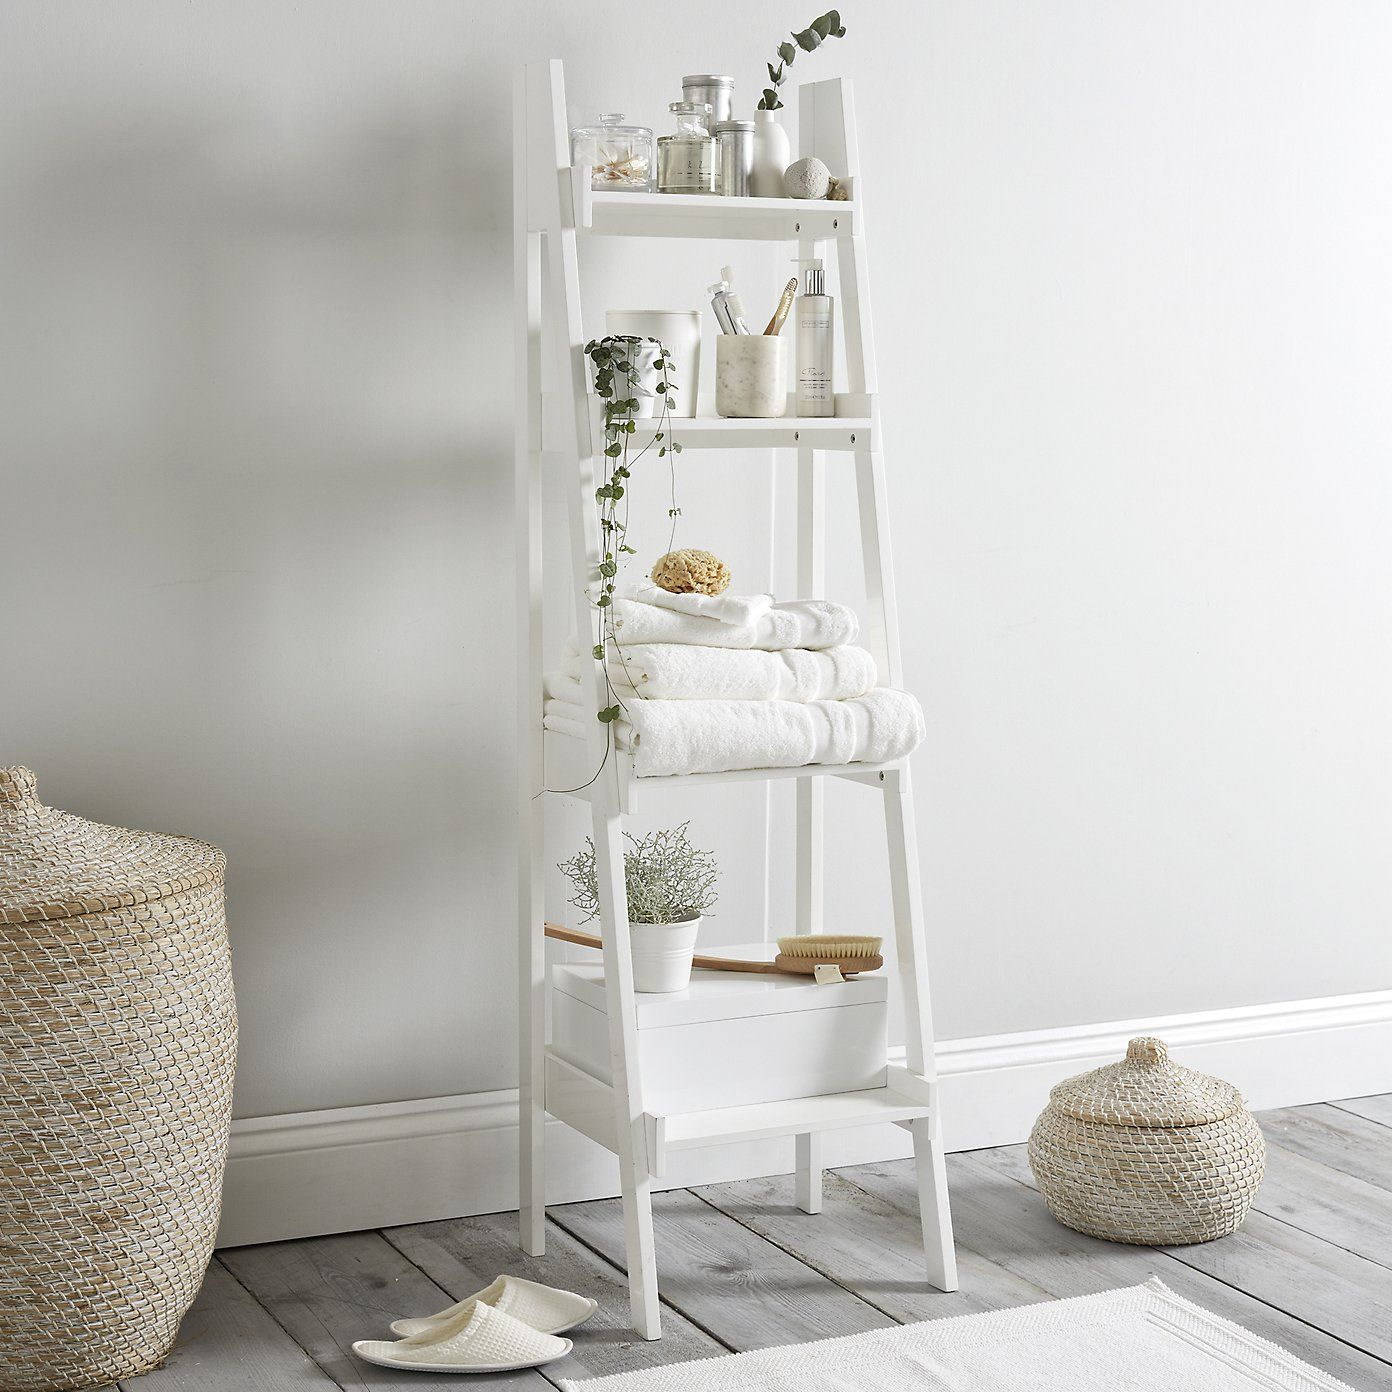 Marvelous Bathroom Lacquer Ladder Shelf Dream Home Bathroom Beutiful Home Inspiration Truamahrainfo